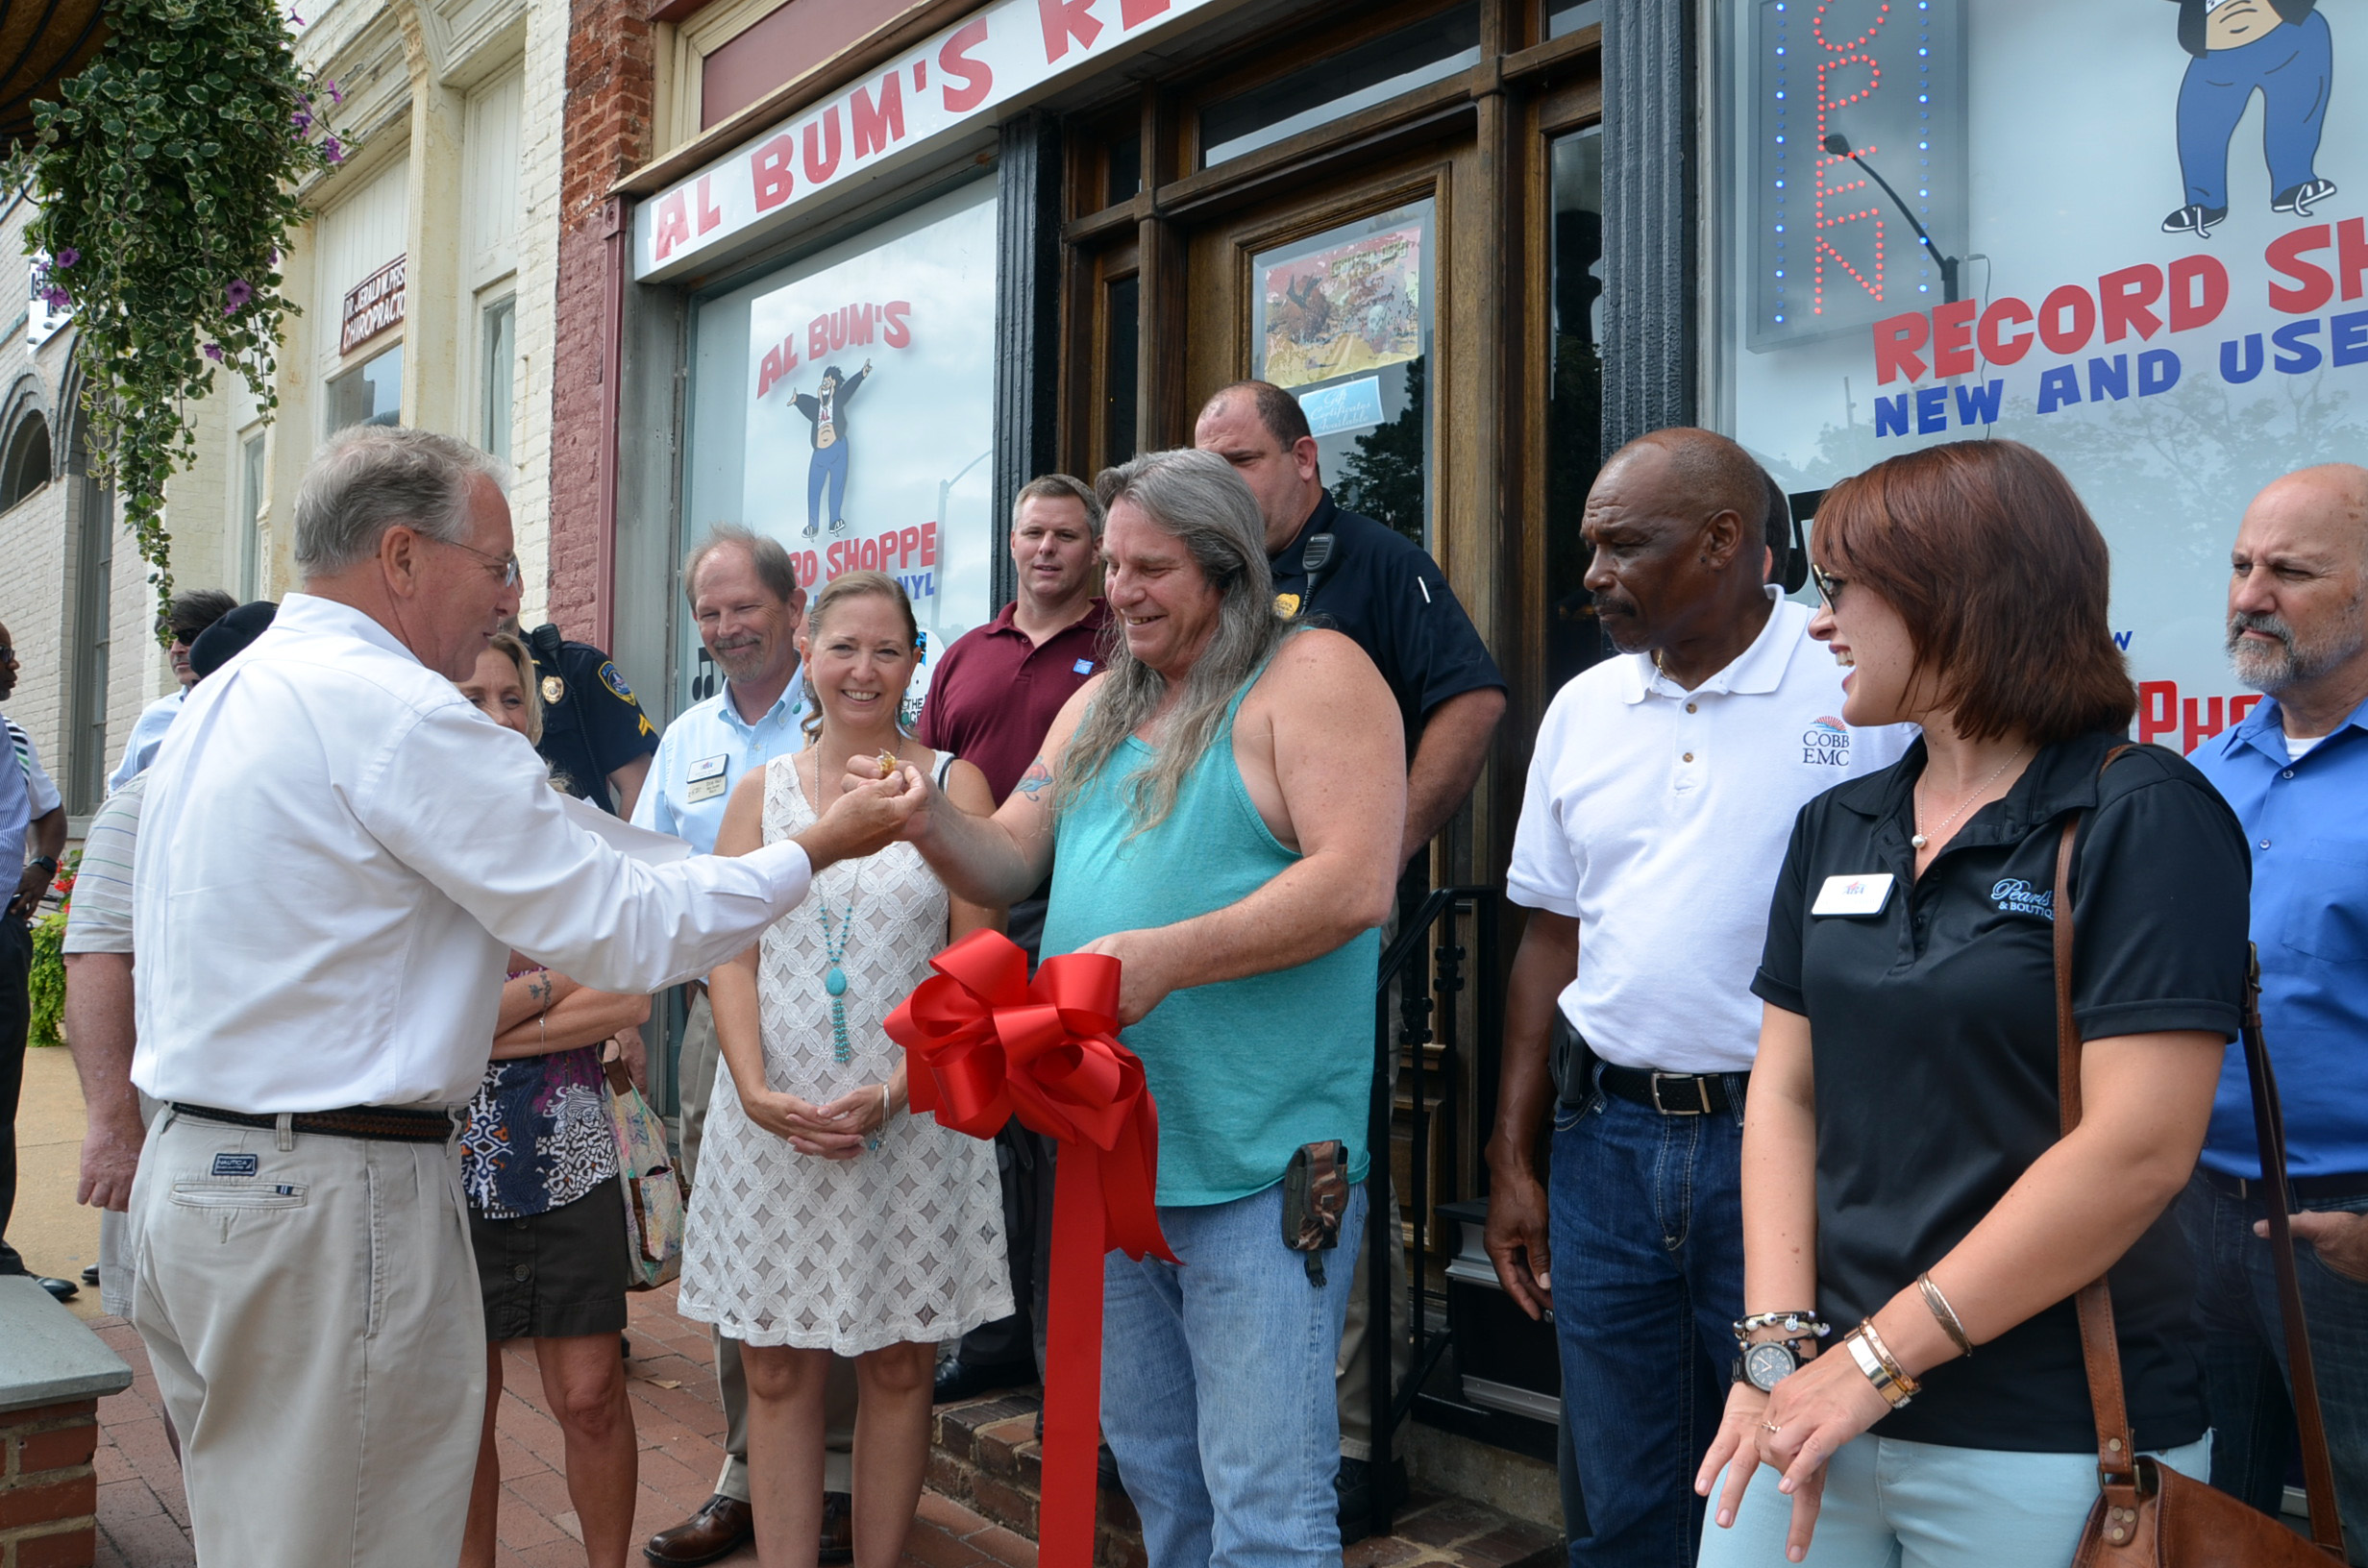 Ribbon Cutting for Al Bum's Record Shoppe photo 3